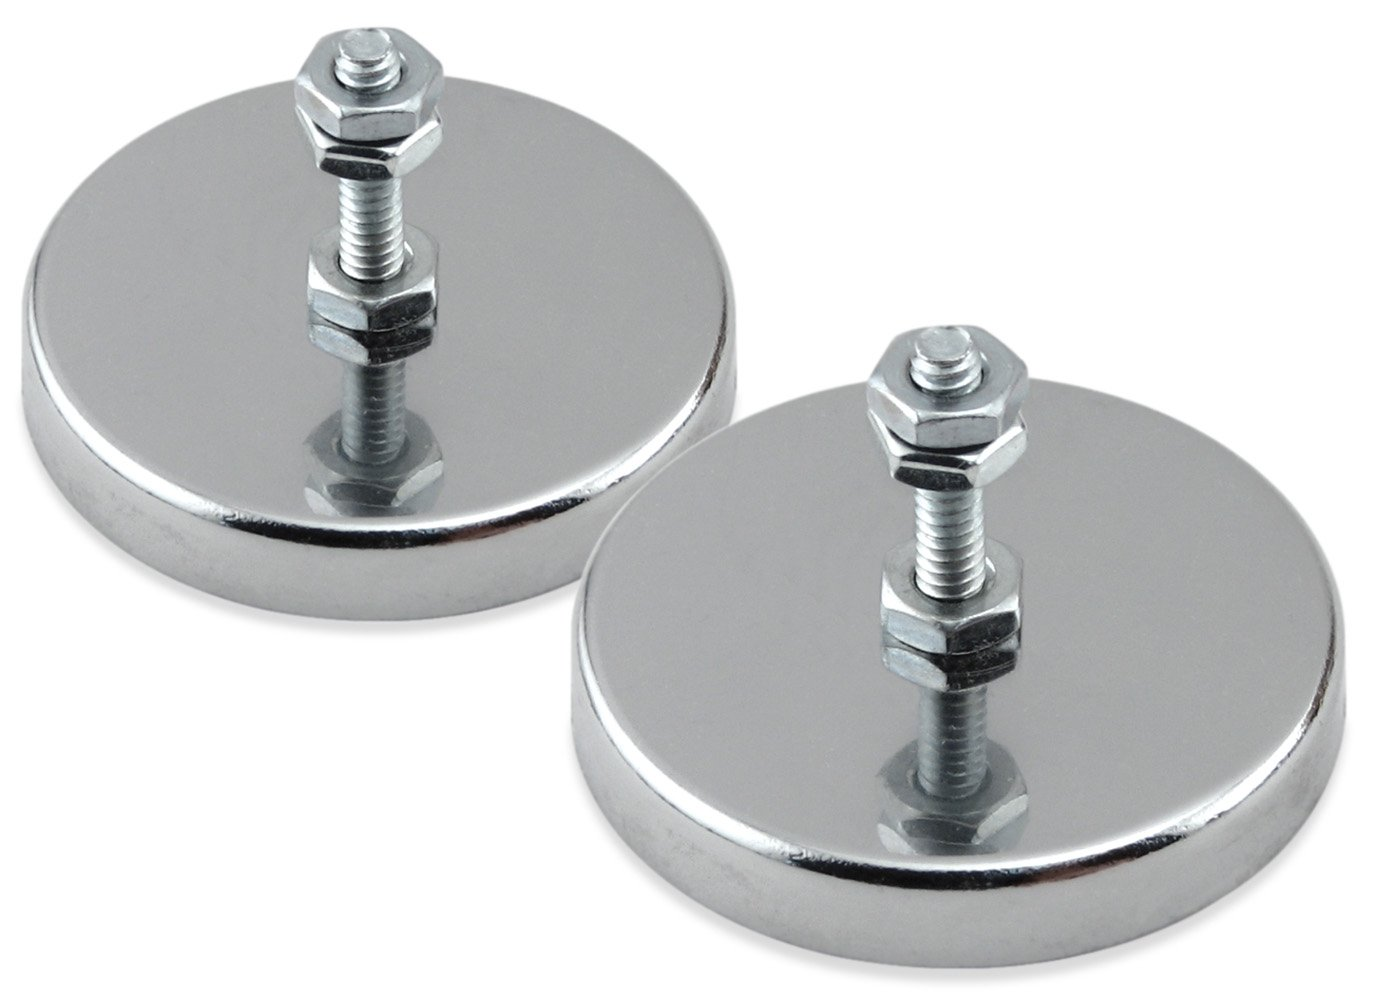 Master Magnetics RB50B3N-NEOX2 Magnetic Hook, Round Base Magnet Fastener with Bolt Chrome Plate, 2.04'' Diameter, 1.25'' Total Height, 90 Pounds, Silver (Pack of 2)